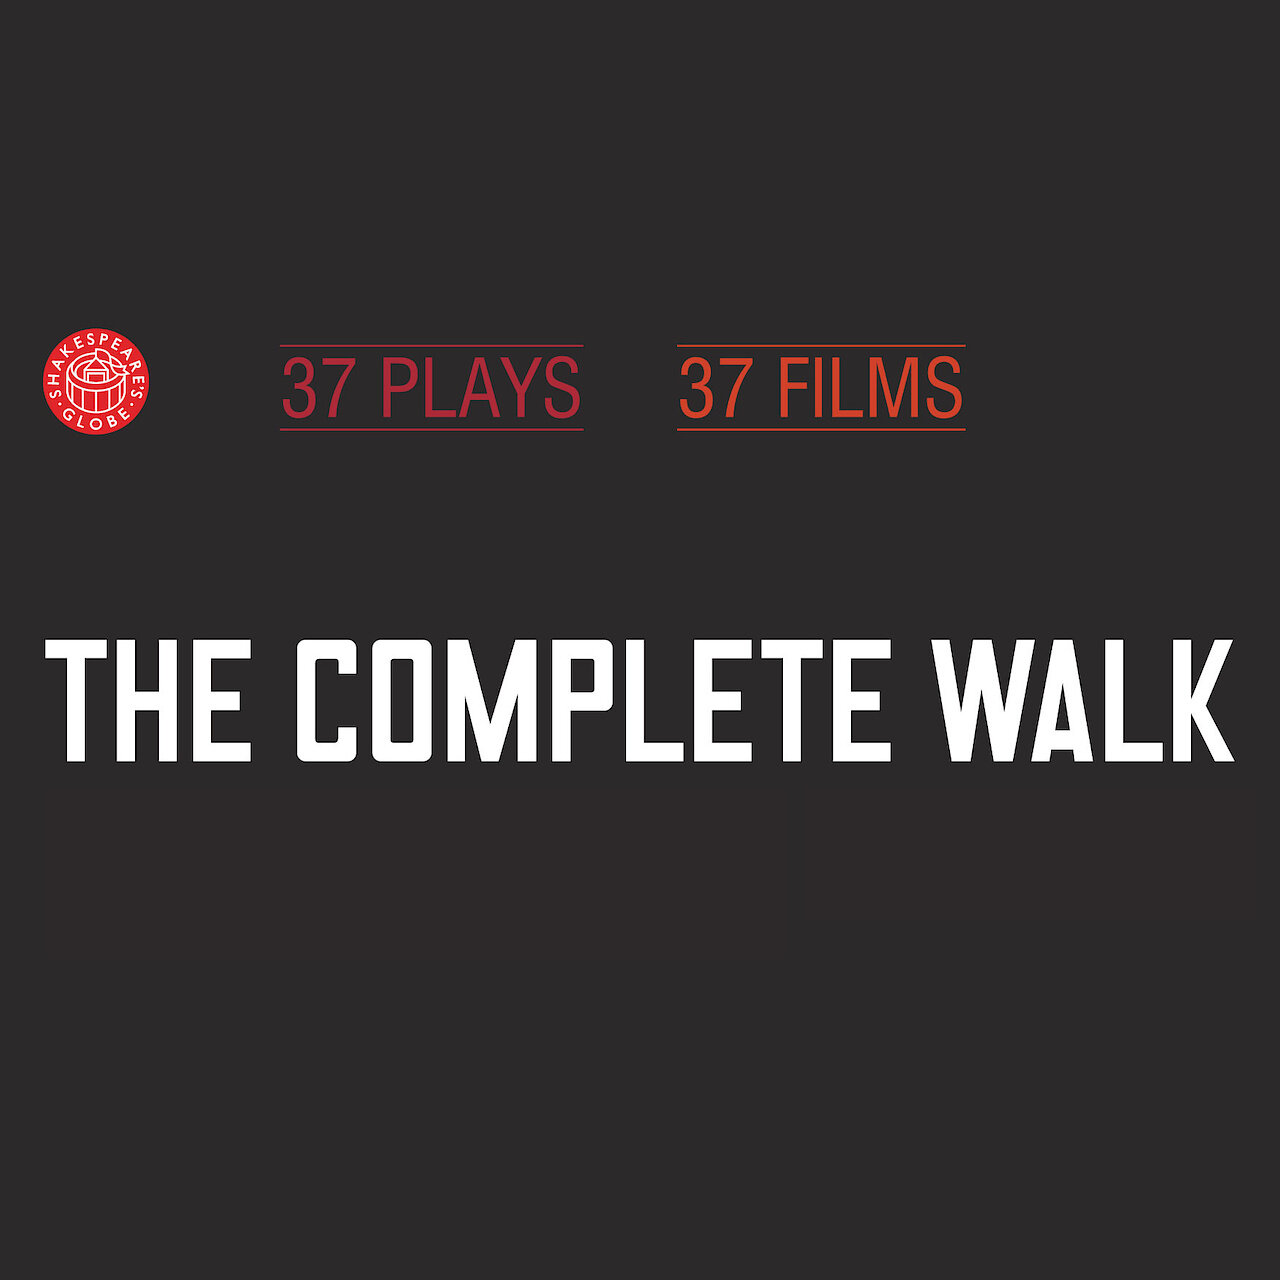 THE COMPLETE WALK - 2016